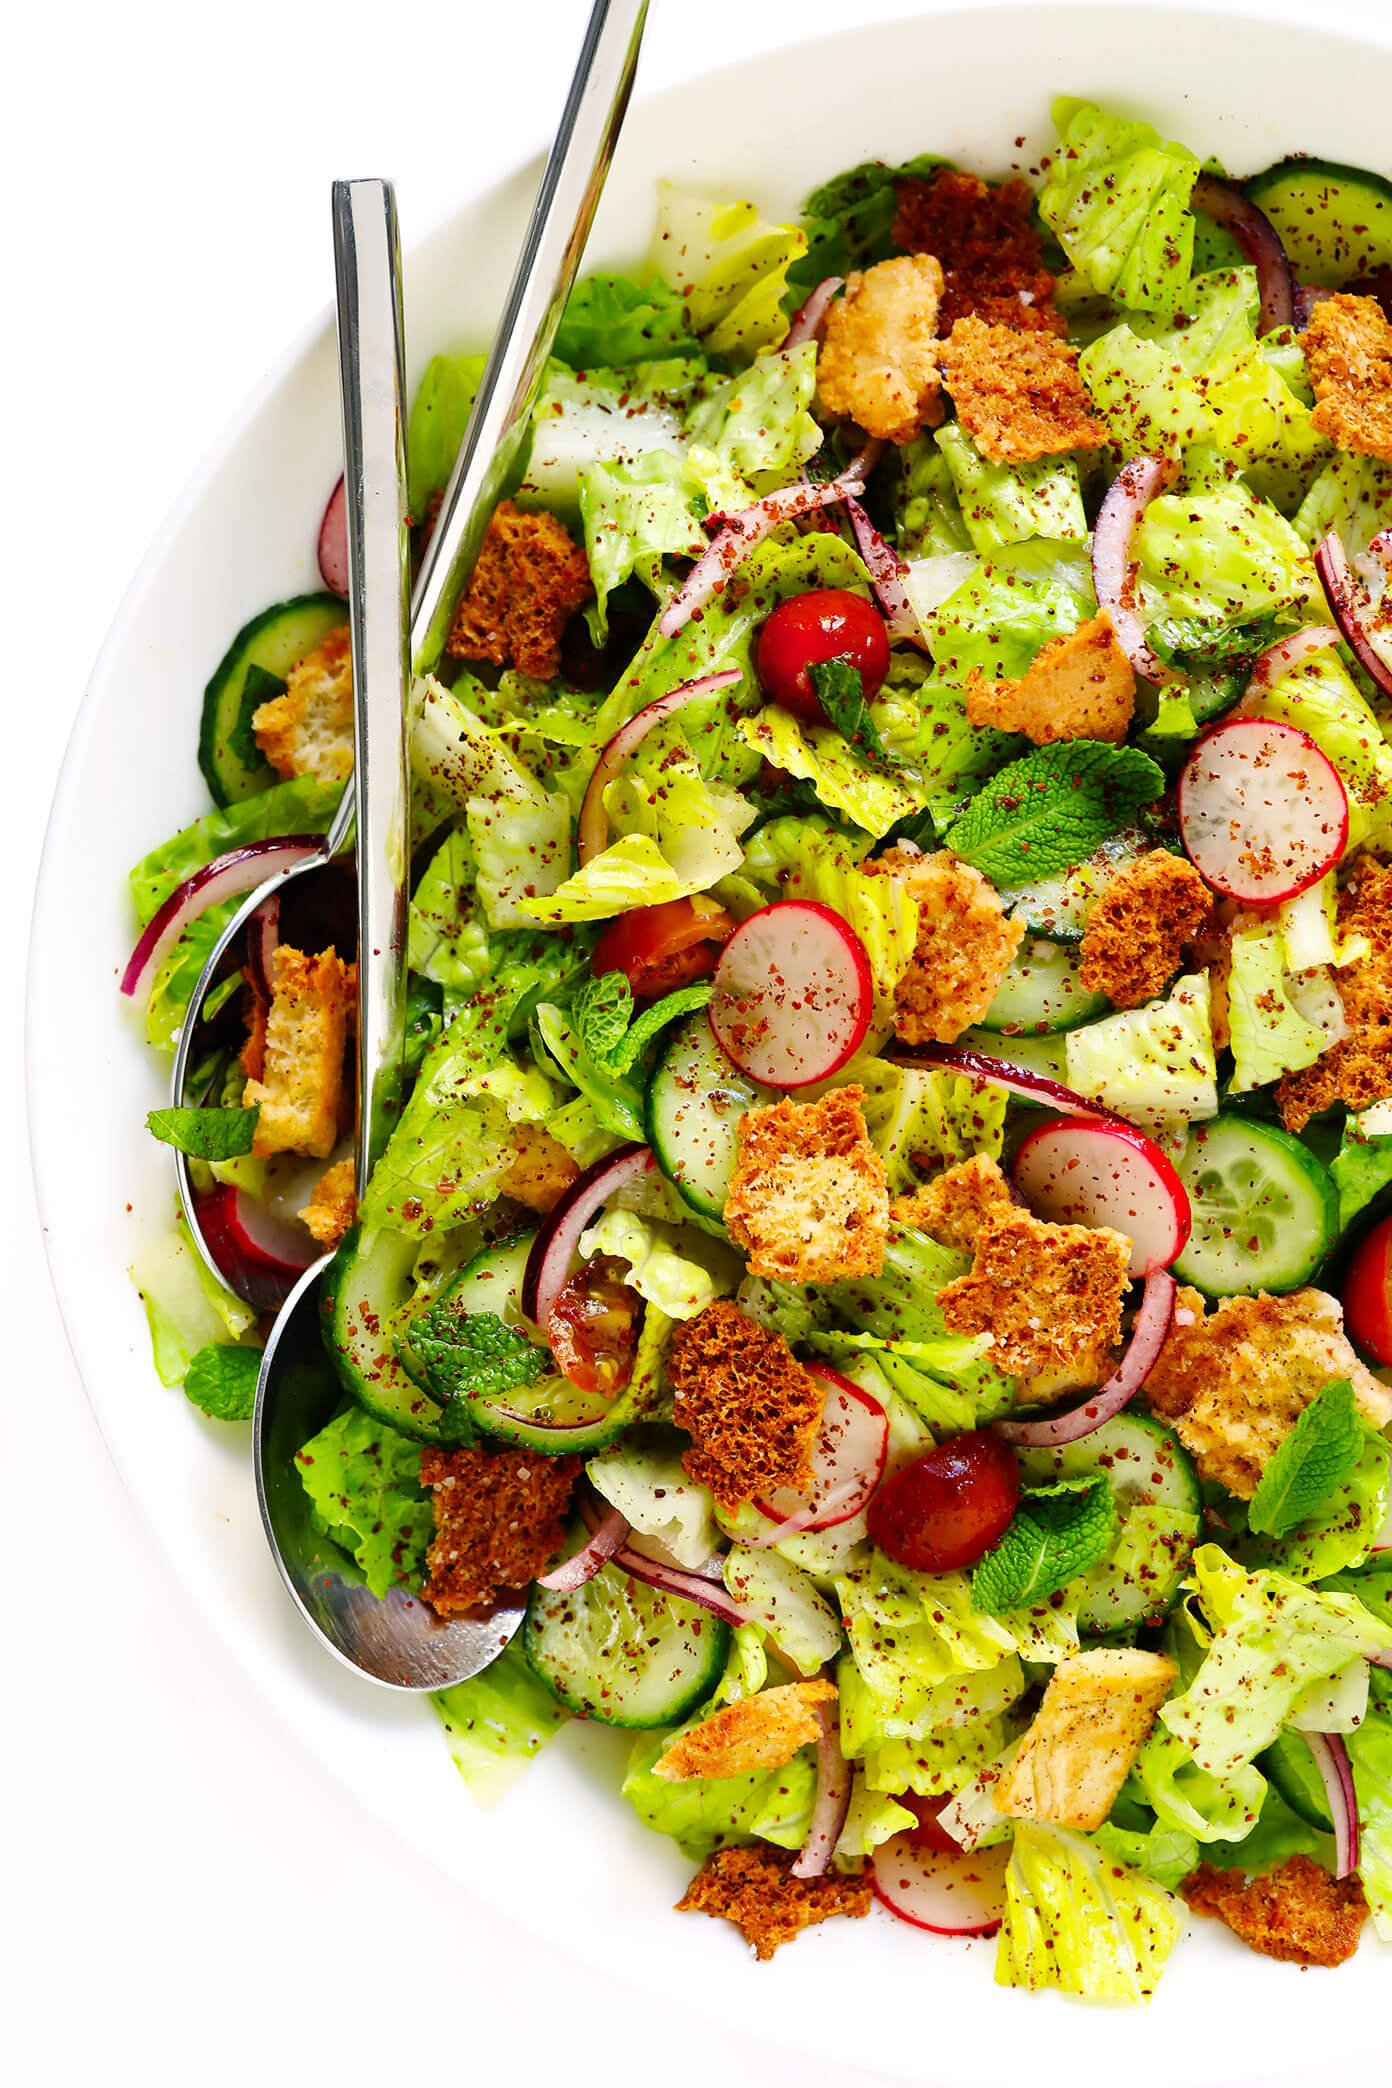 Best Fattoush Salad Recipe with Pita Croutons